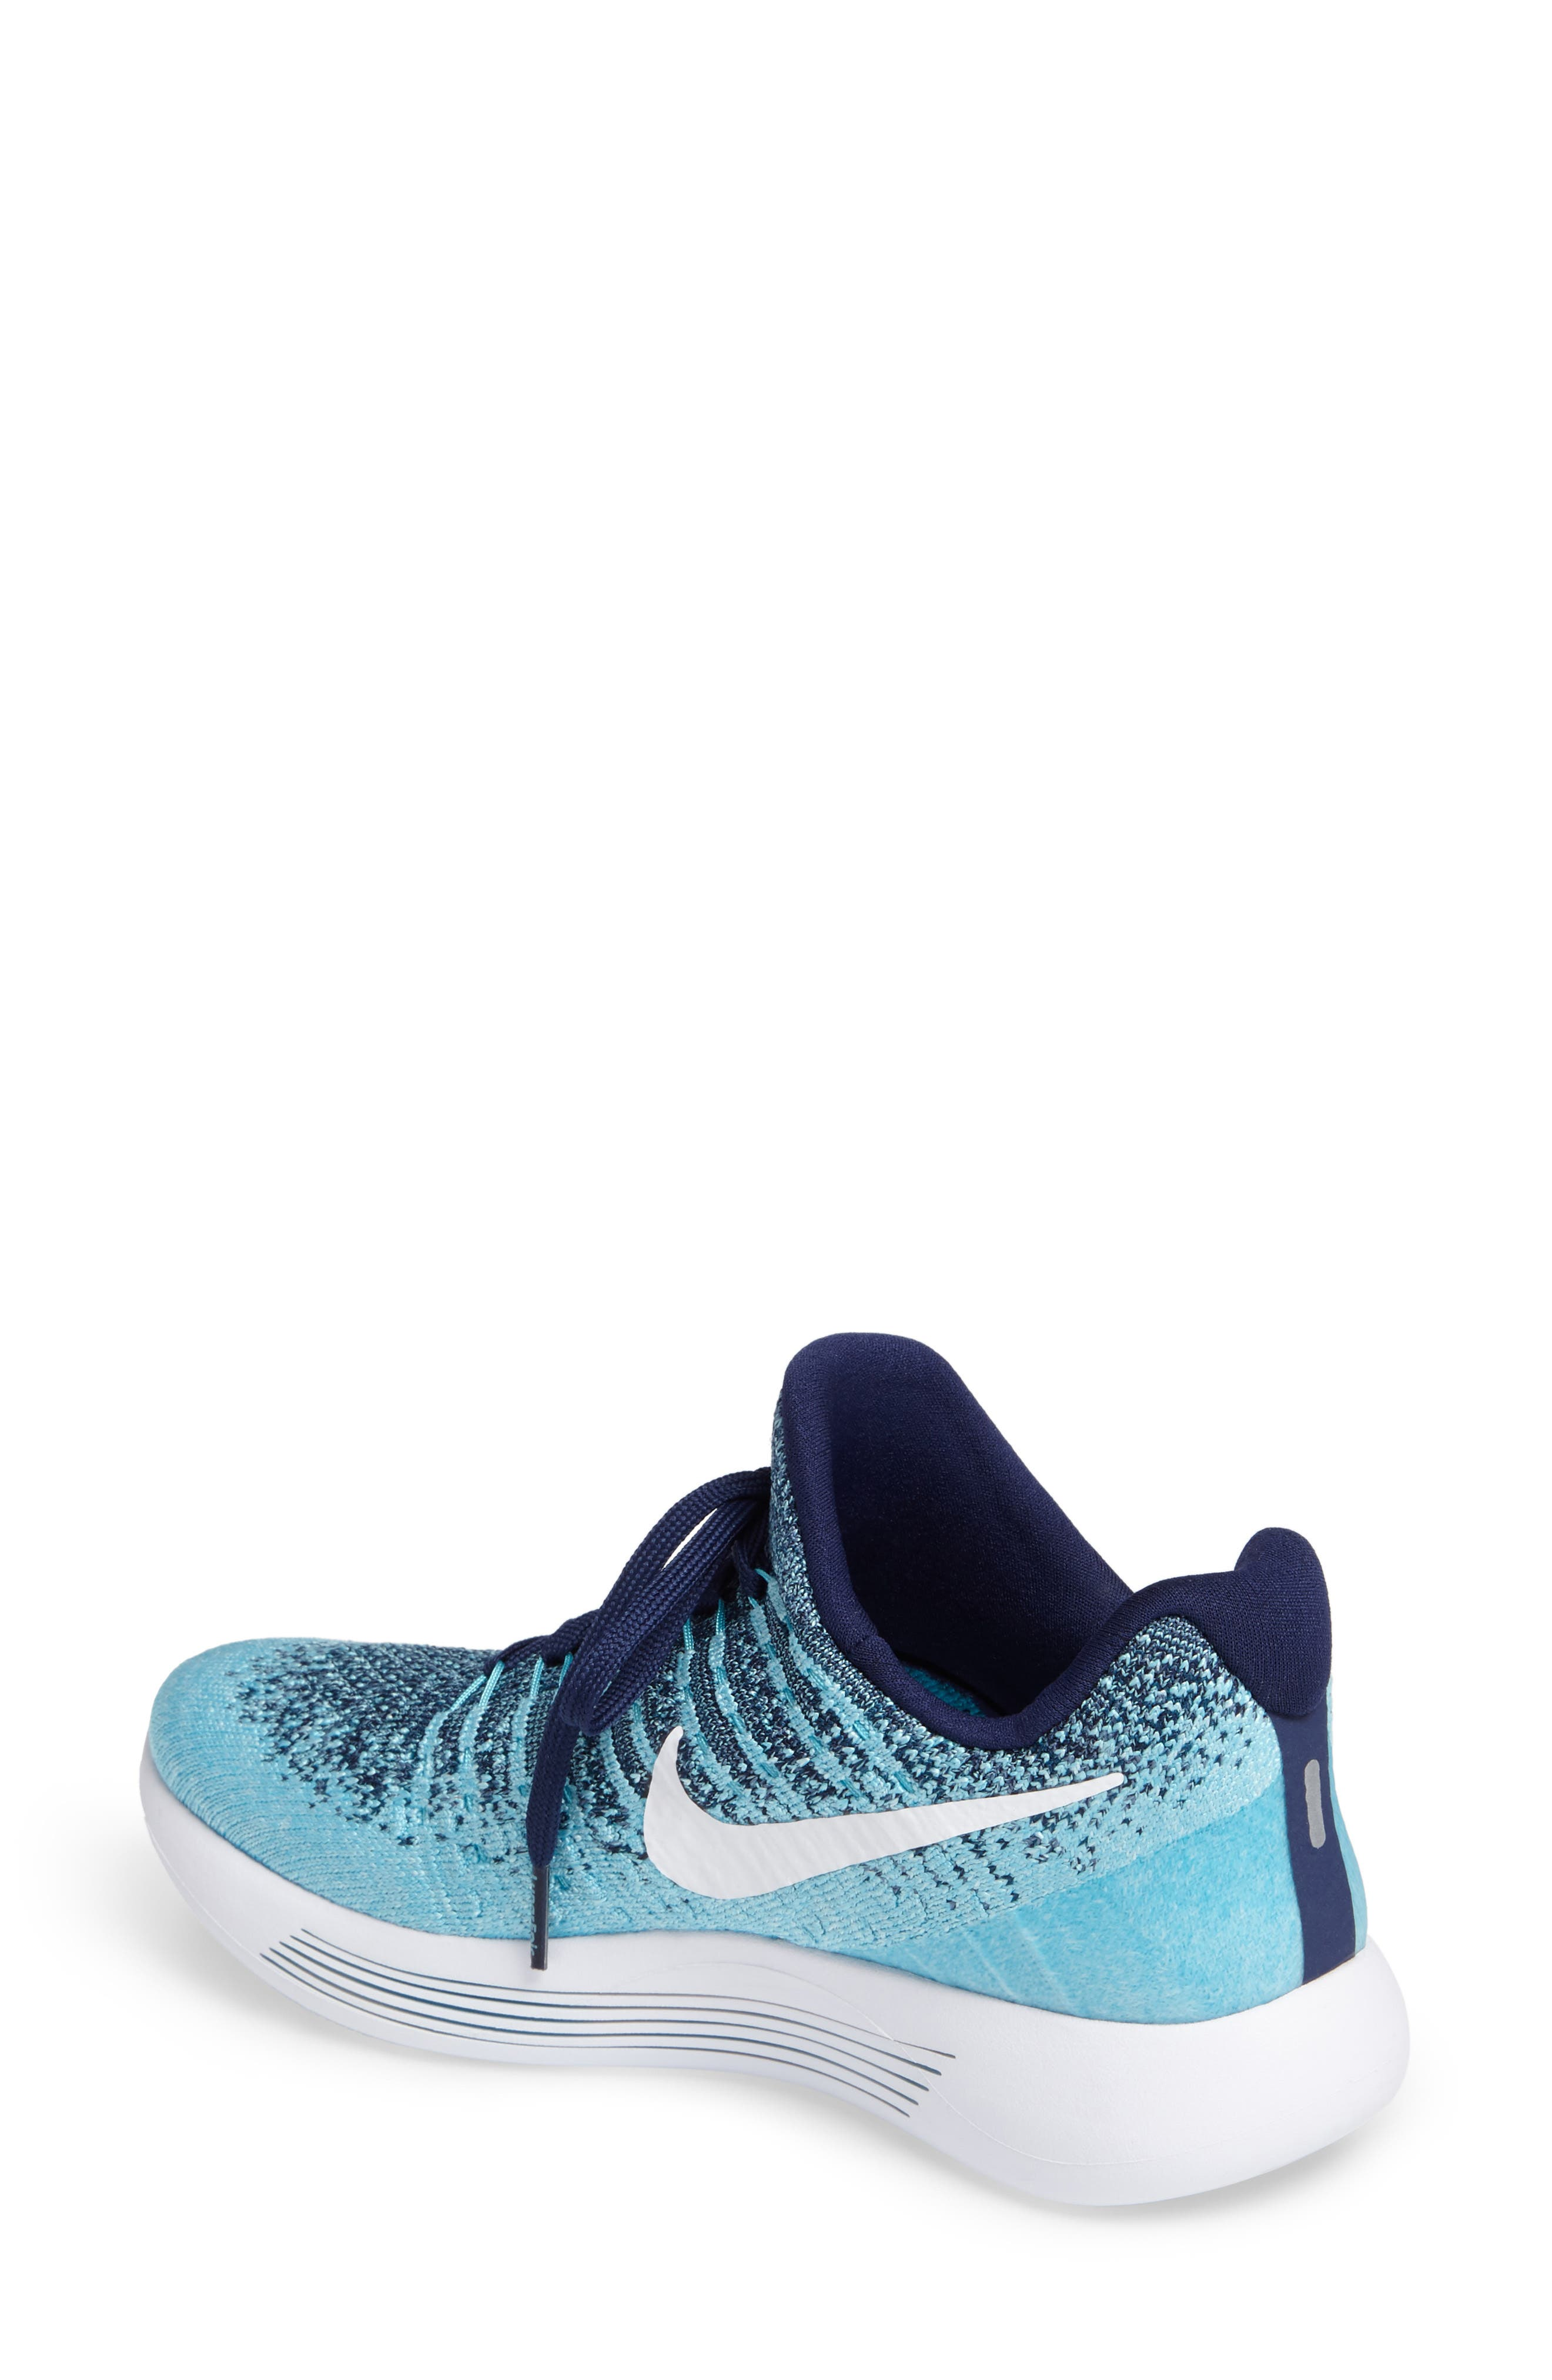 ,                             LunarEpic Low Flyknit 2 Running Shoe,                             Alternate thumbnail 72, color,                             402